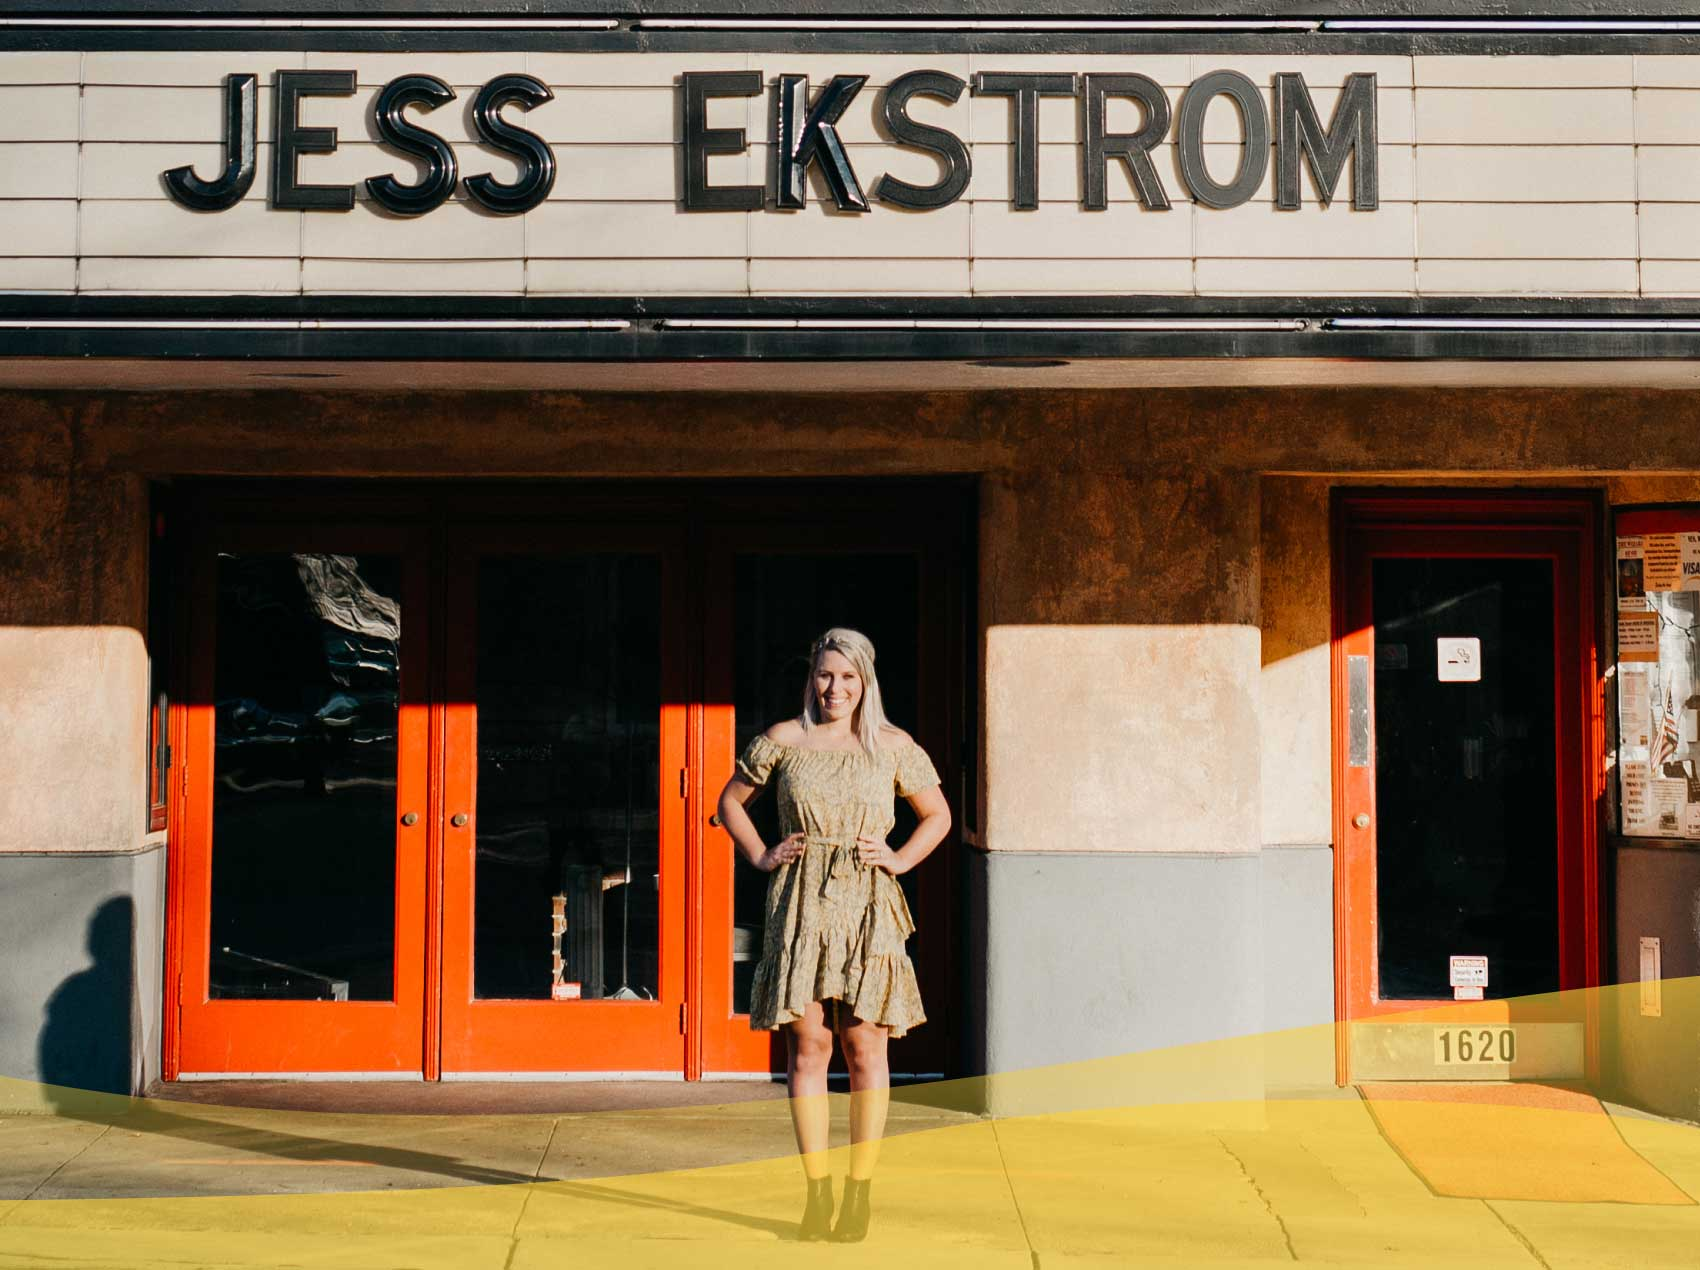 Jess Ekstrom standing outside of a building with a sign that has her name in big letters